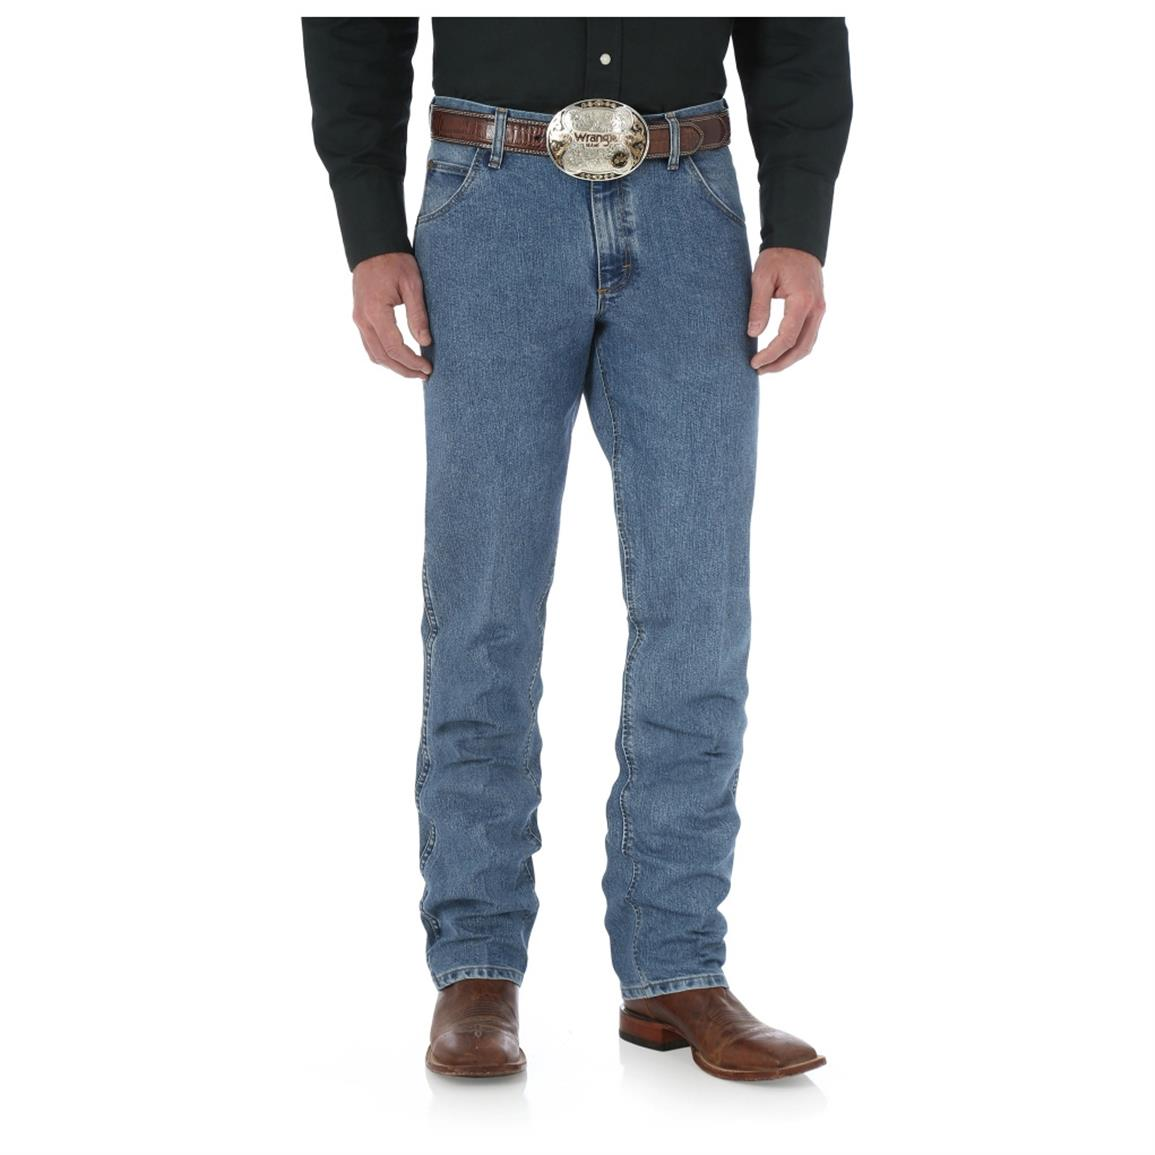 Wrangler Men's Premium Performance Cool Vantage Cowboy Cut Regular Fit Jeans, Light Stone